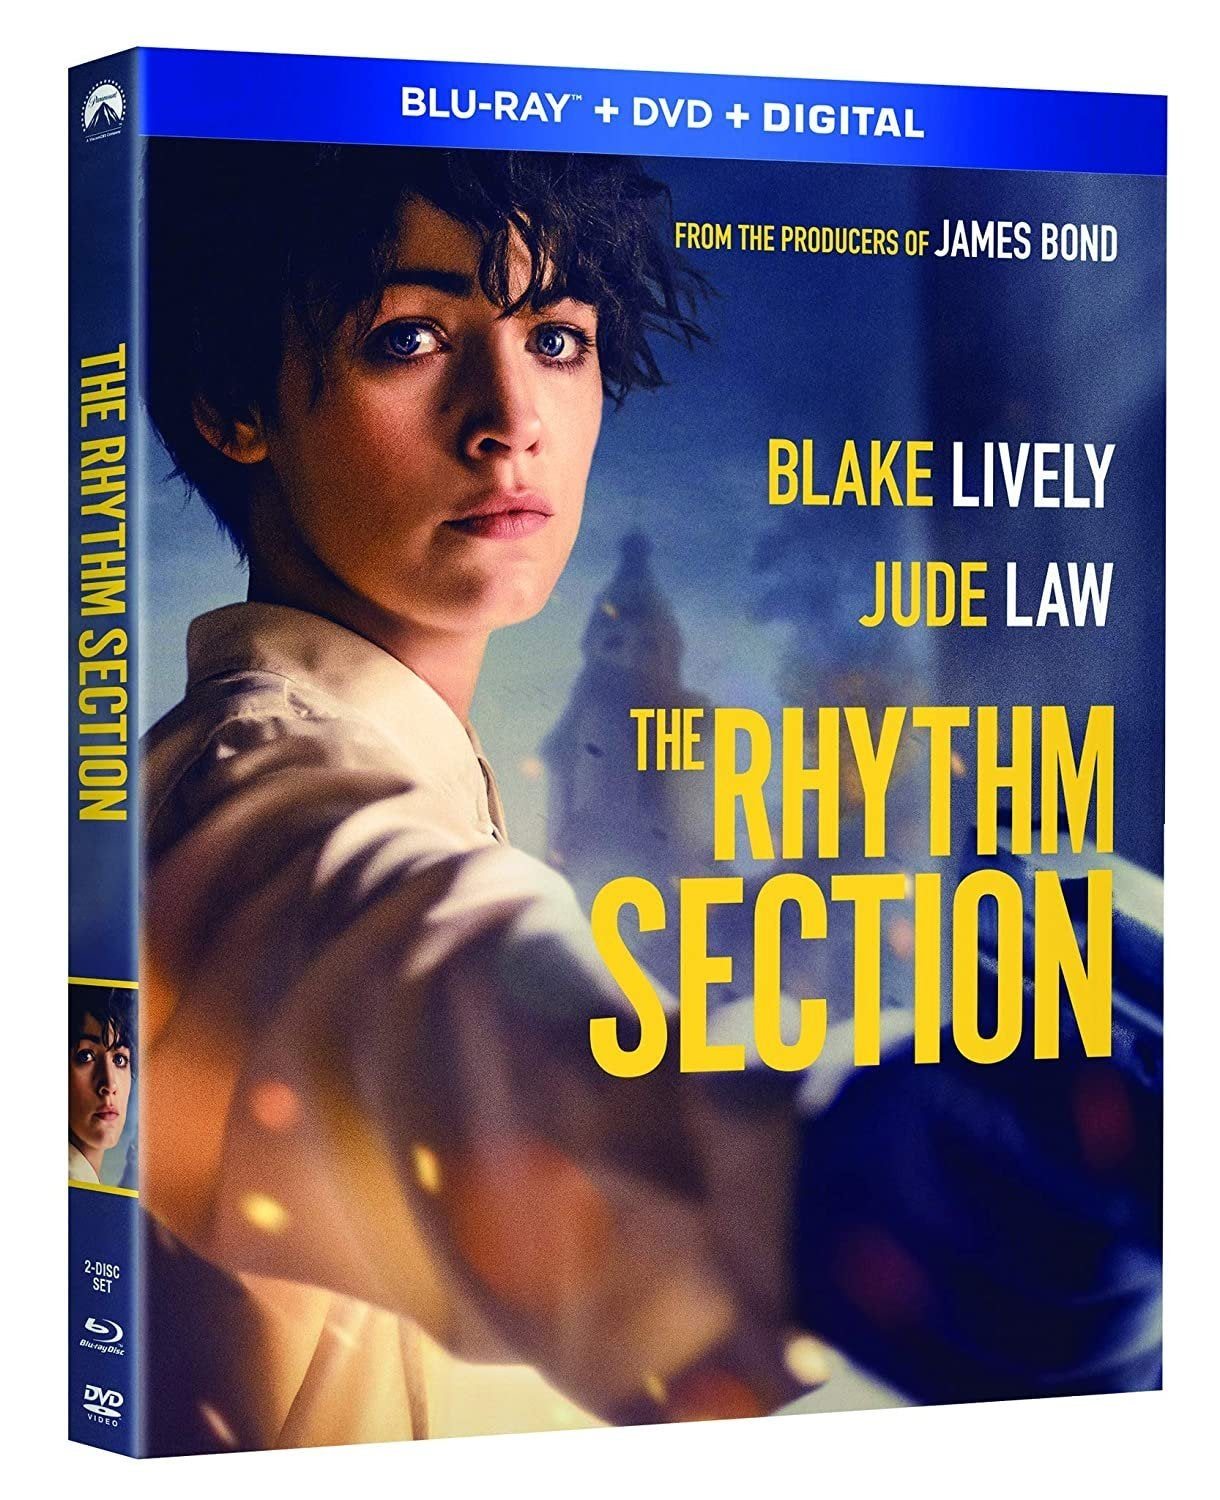 the rhythm section blu ray cover blake lively